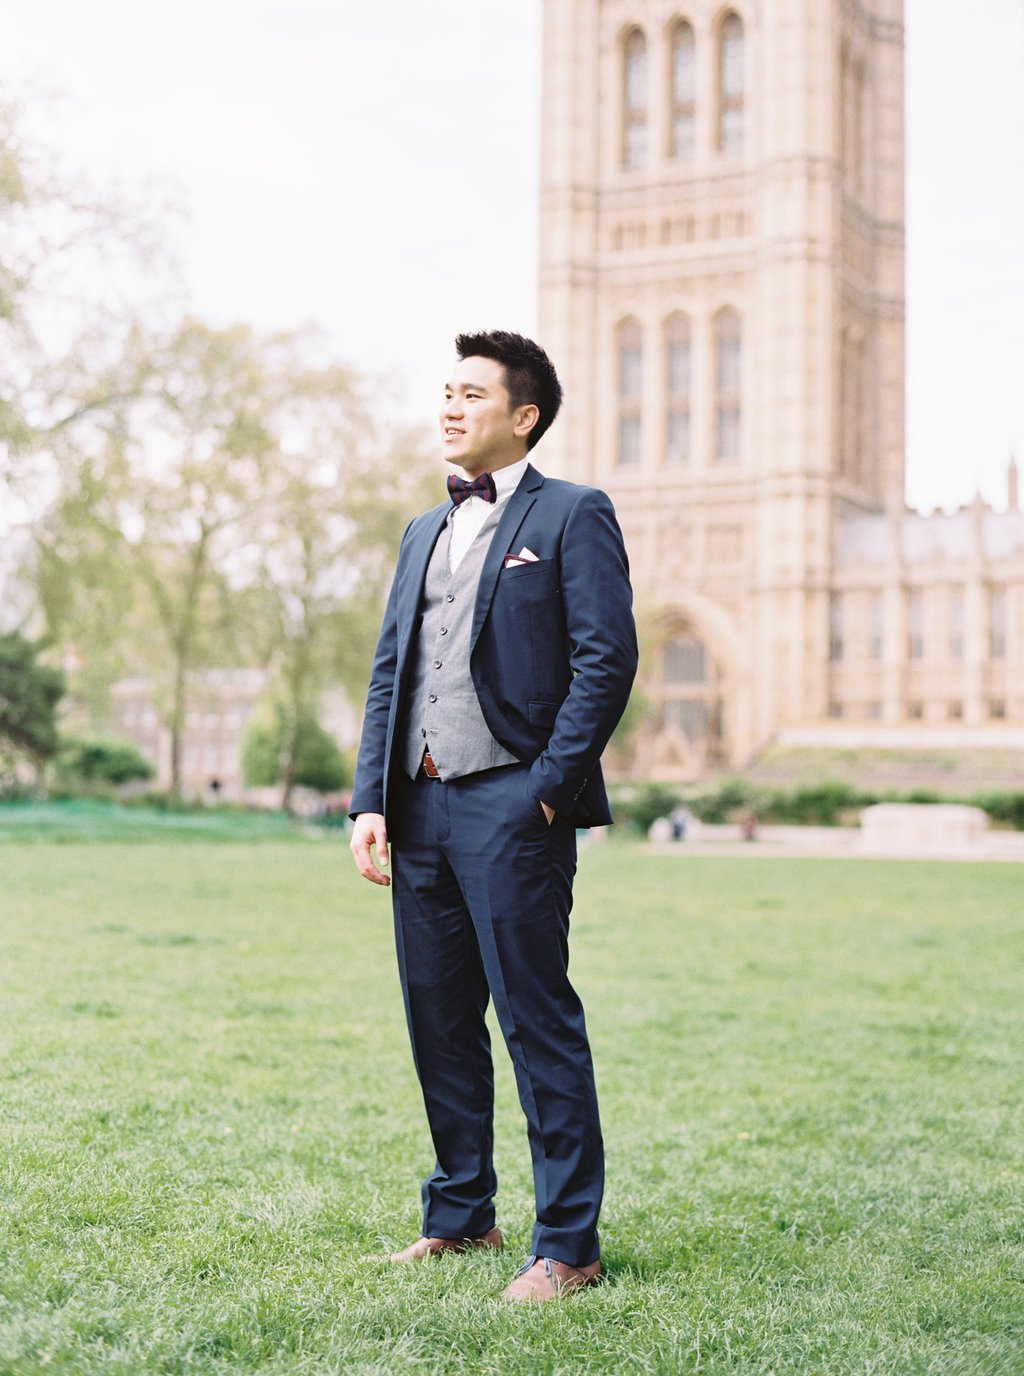 Oversea per wedding photography London Westminster House of Parliment